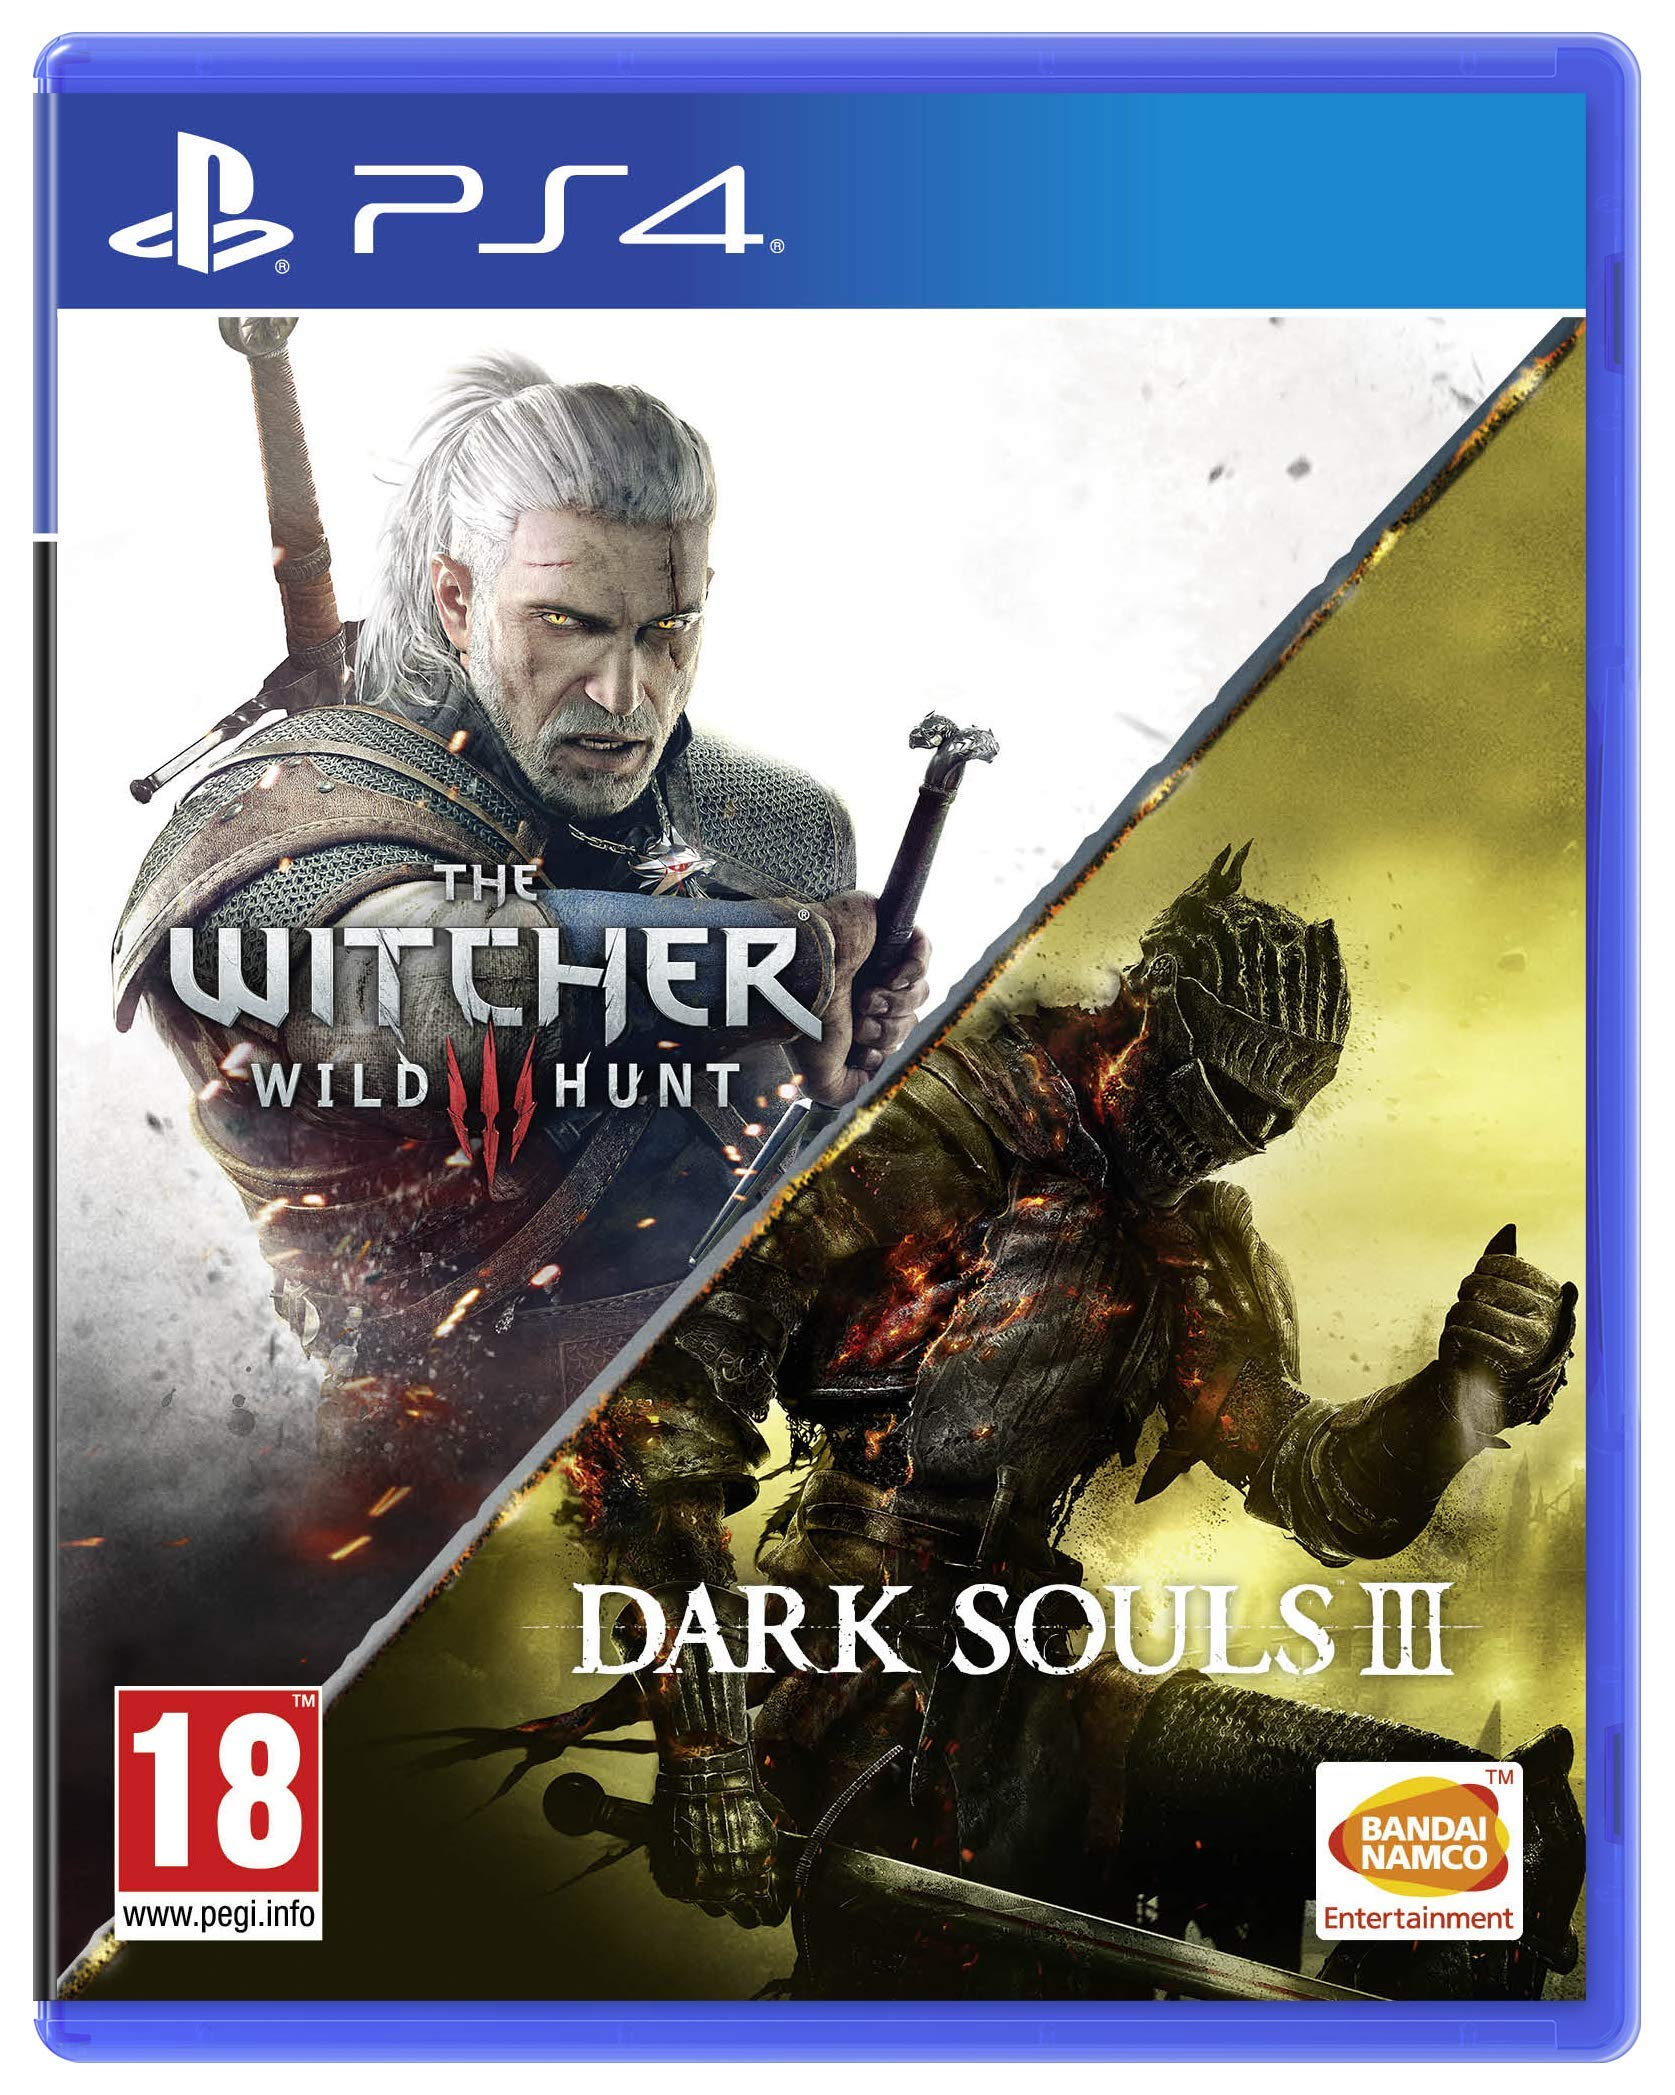 The Witcher 3 Wild Hunt + Dark Souls III Bundle